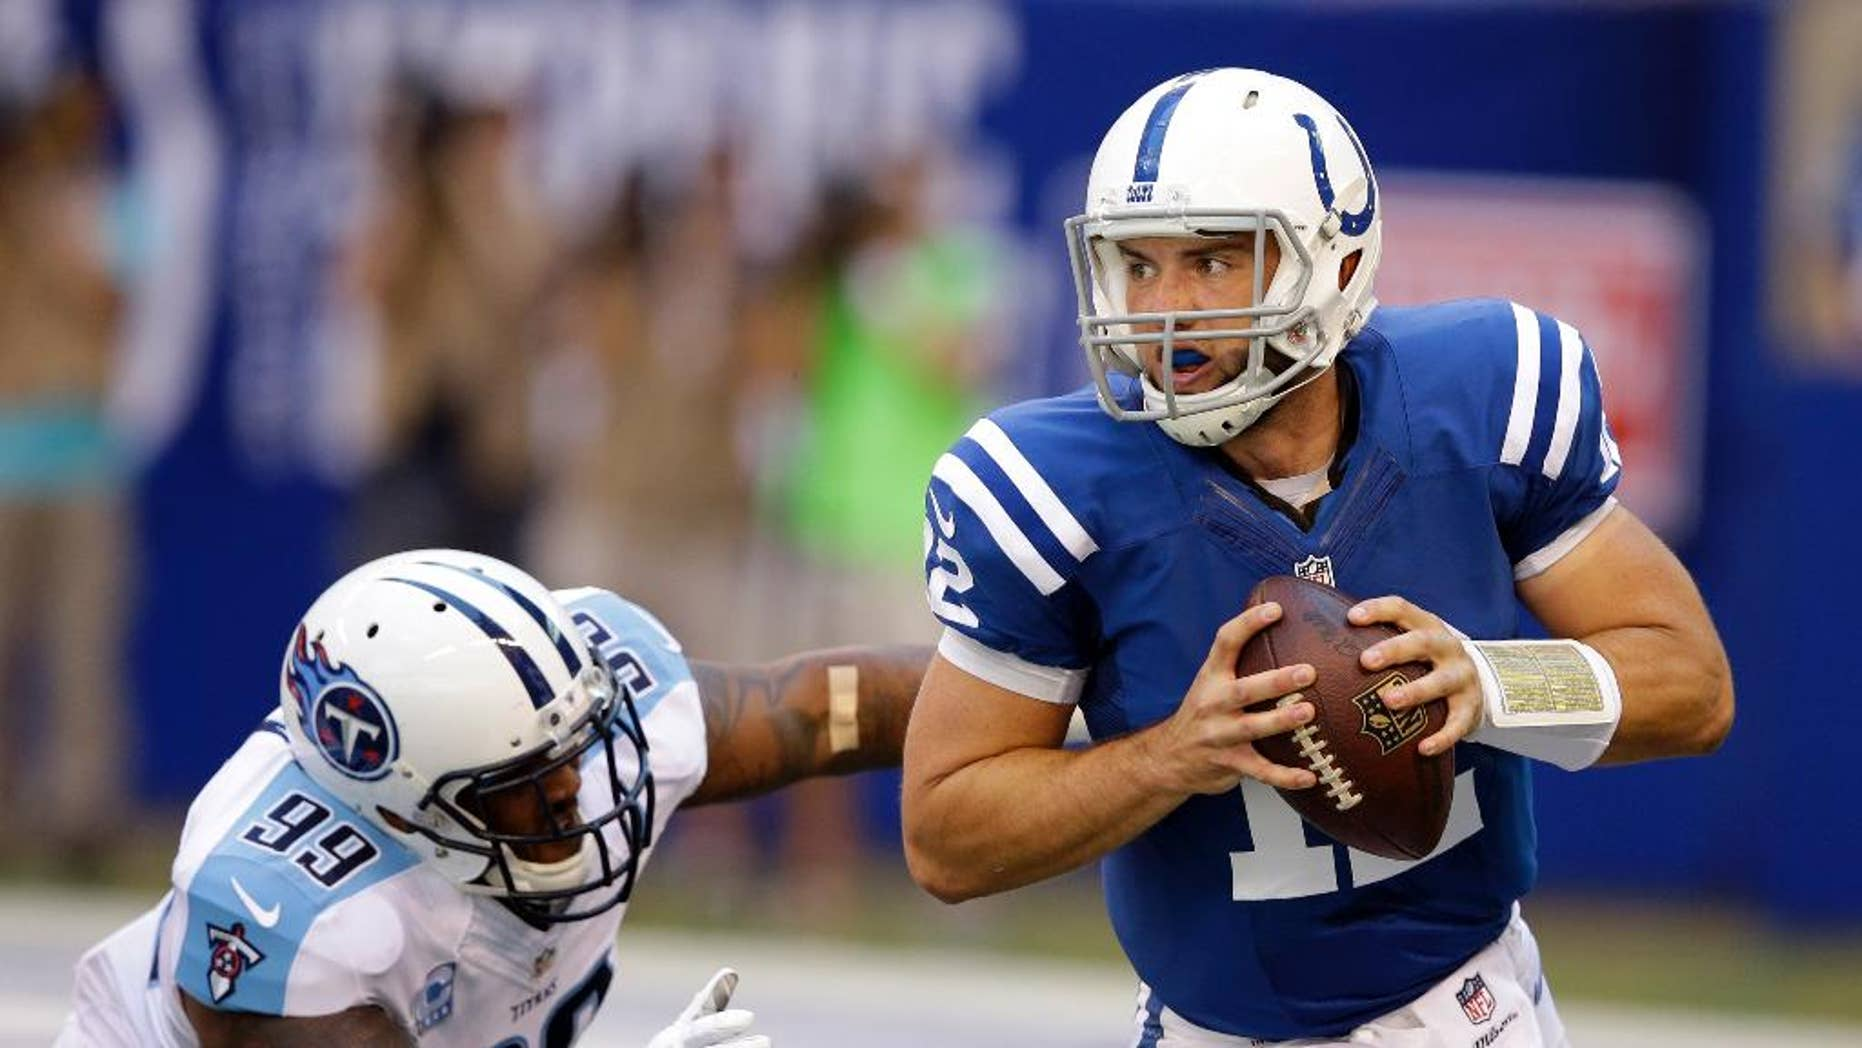 Tennessee Titans defensive end Jurrell Casey, left, chases Indianapolis Colts quarterback Andrew Luck during the first half of an NFL football game in Indianapolis, Sunday, Sept. 28, 2014. (AP Photo/Darron Cummings)